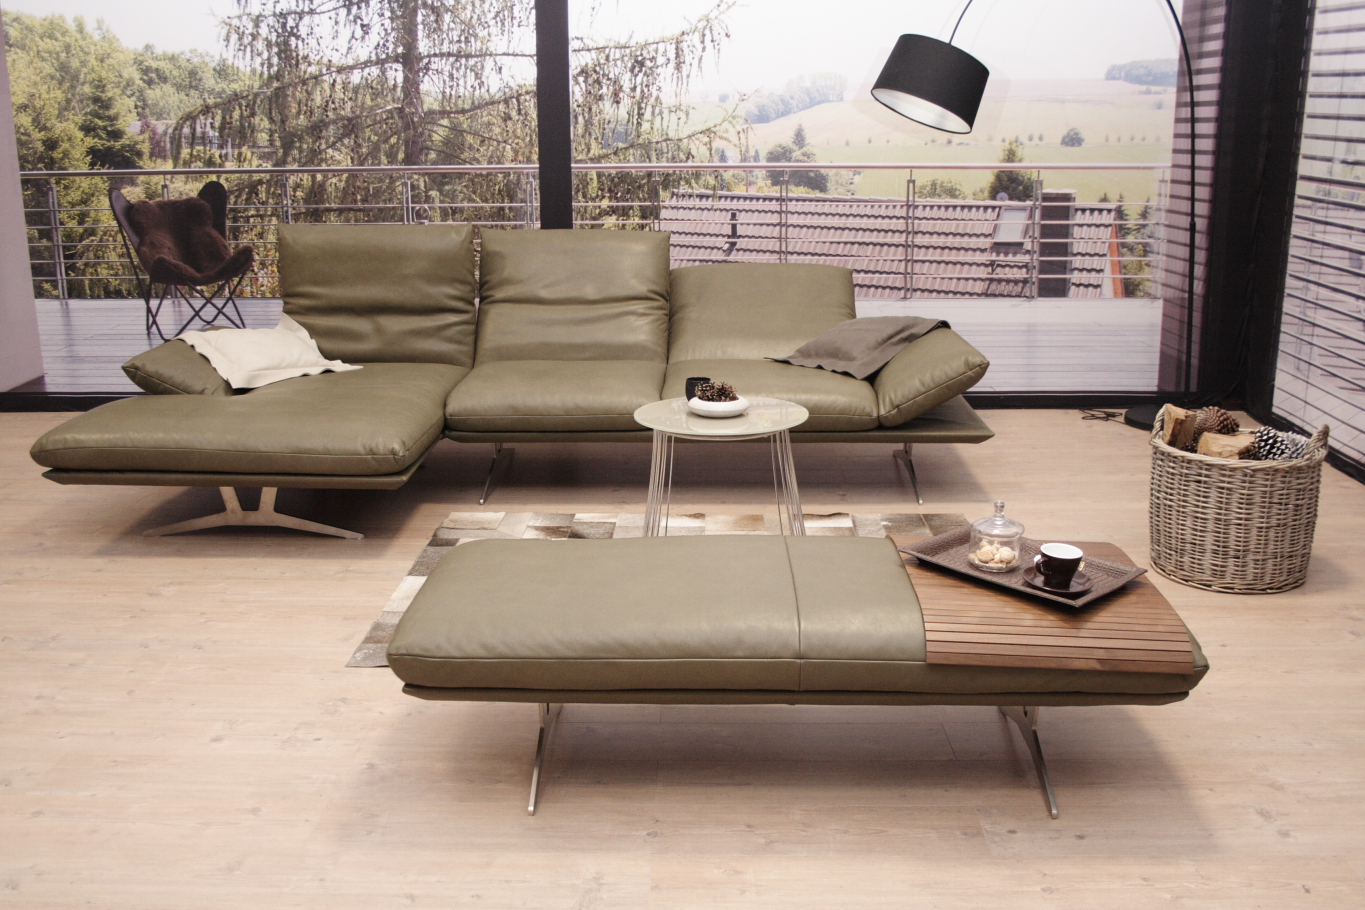 Startseite outlet gera designerm bel zum outletpreis for Sofa designer outlet